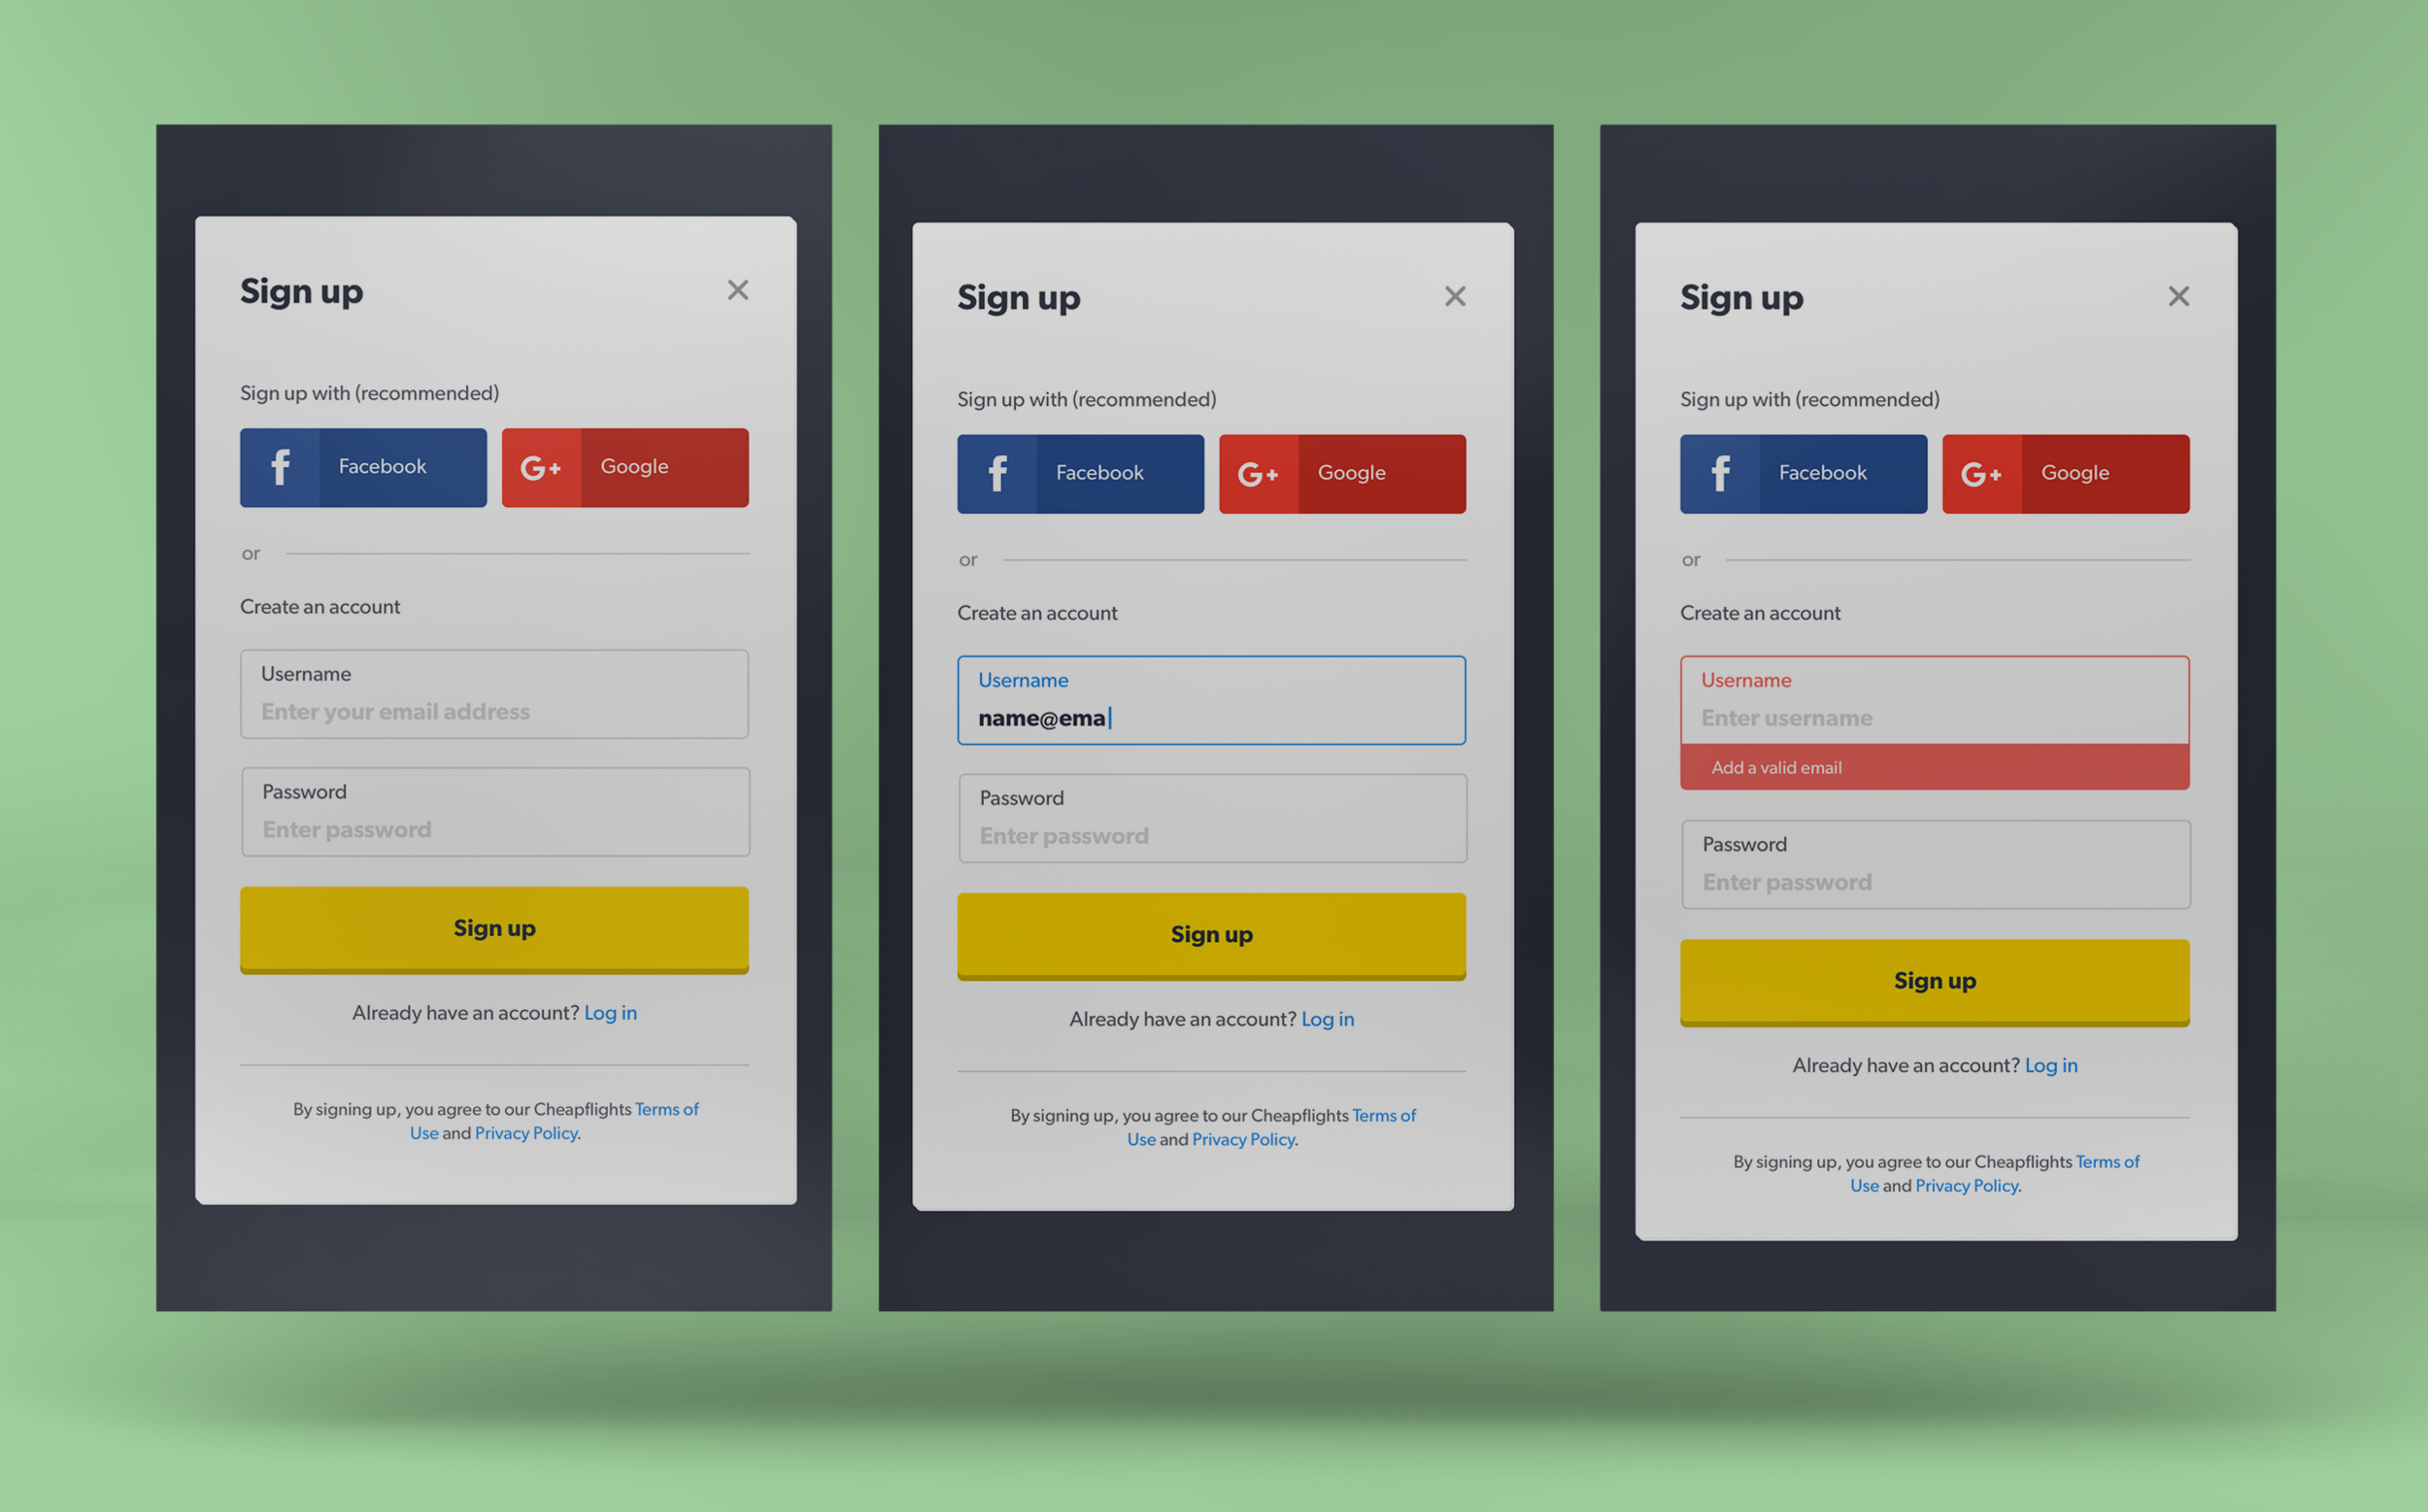 Personalisation sign up form styling using new components from the Visual Design System - States: Default / Focus / Error - Form is less cluttered and optimised for faster sign up